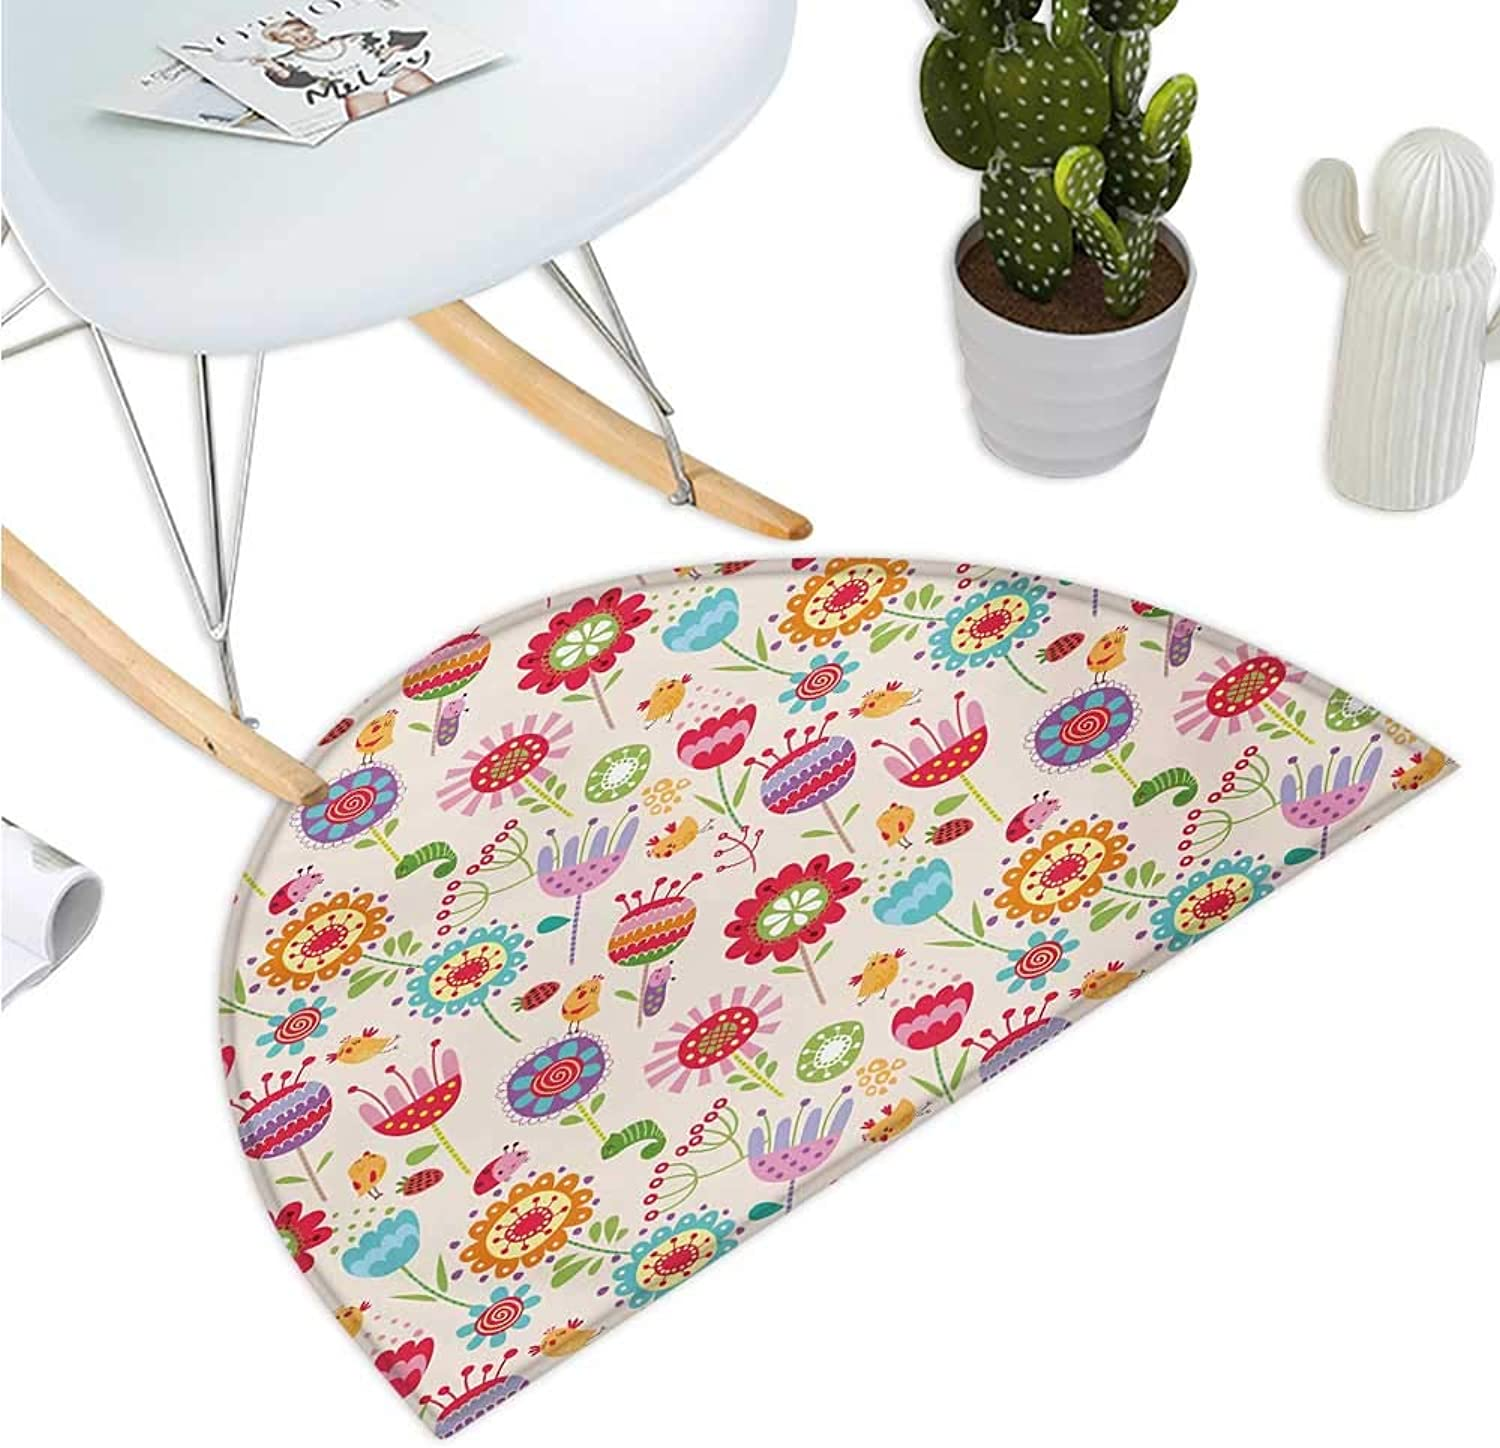 Floral Semicircular Cushion Cartoon Drawing Style Ladybug Strawberry Bird Caterpillar Vibrant colord Characters Entry Door Mat H 39.3  xD 59  Multicolor